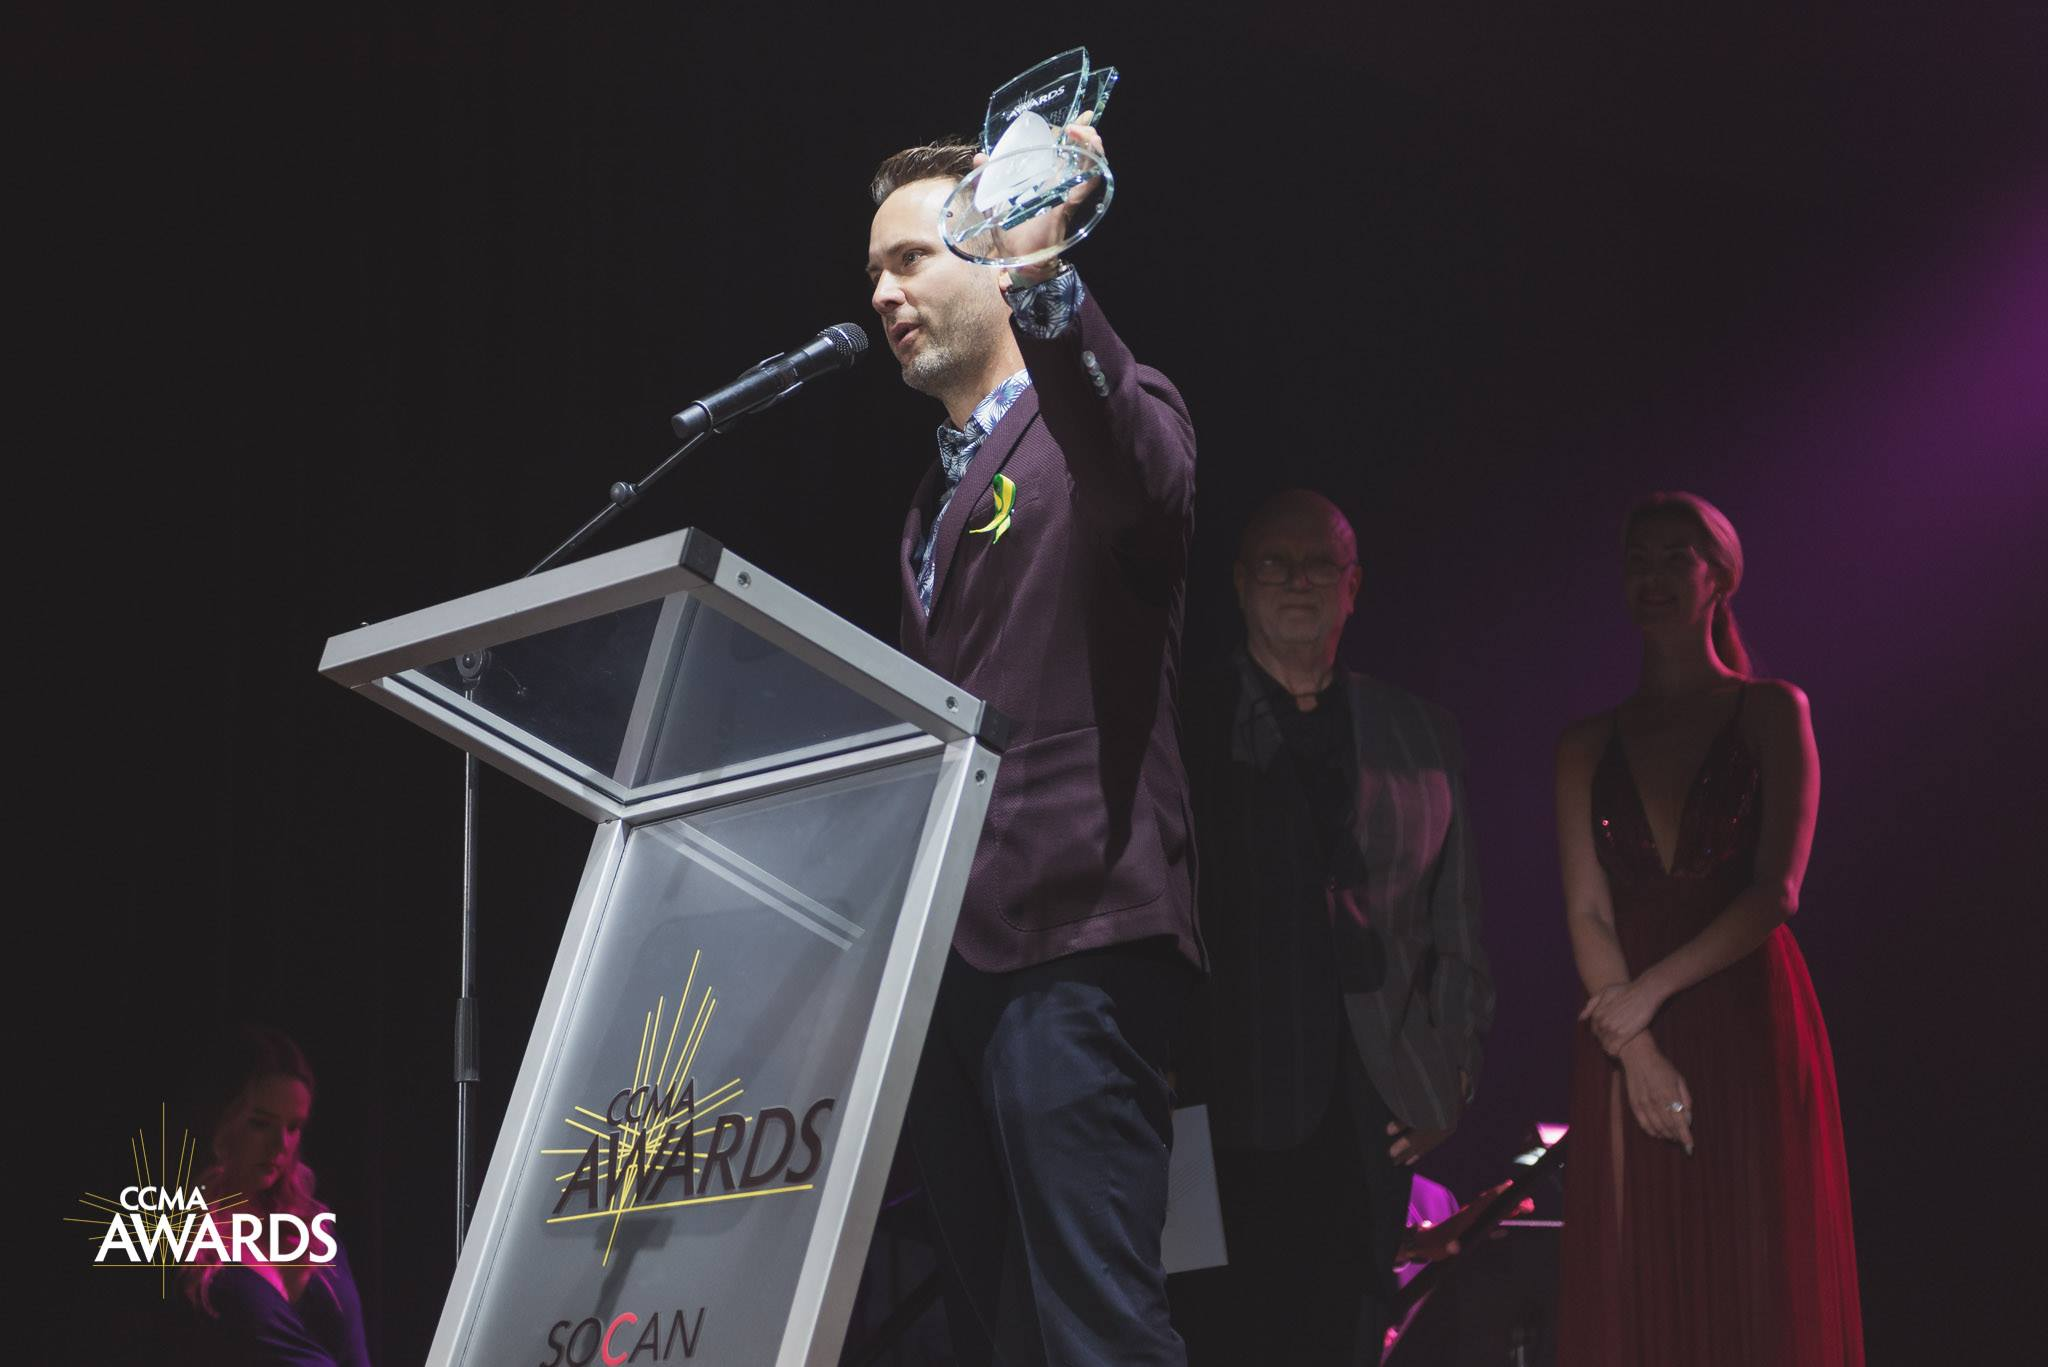 Dallas Smith accepting the Video of the Year Award with Stingray Music's Country Music programmer, Greg Torrington looking on.